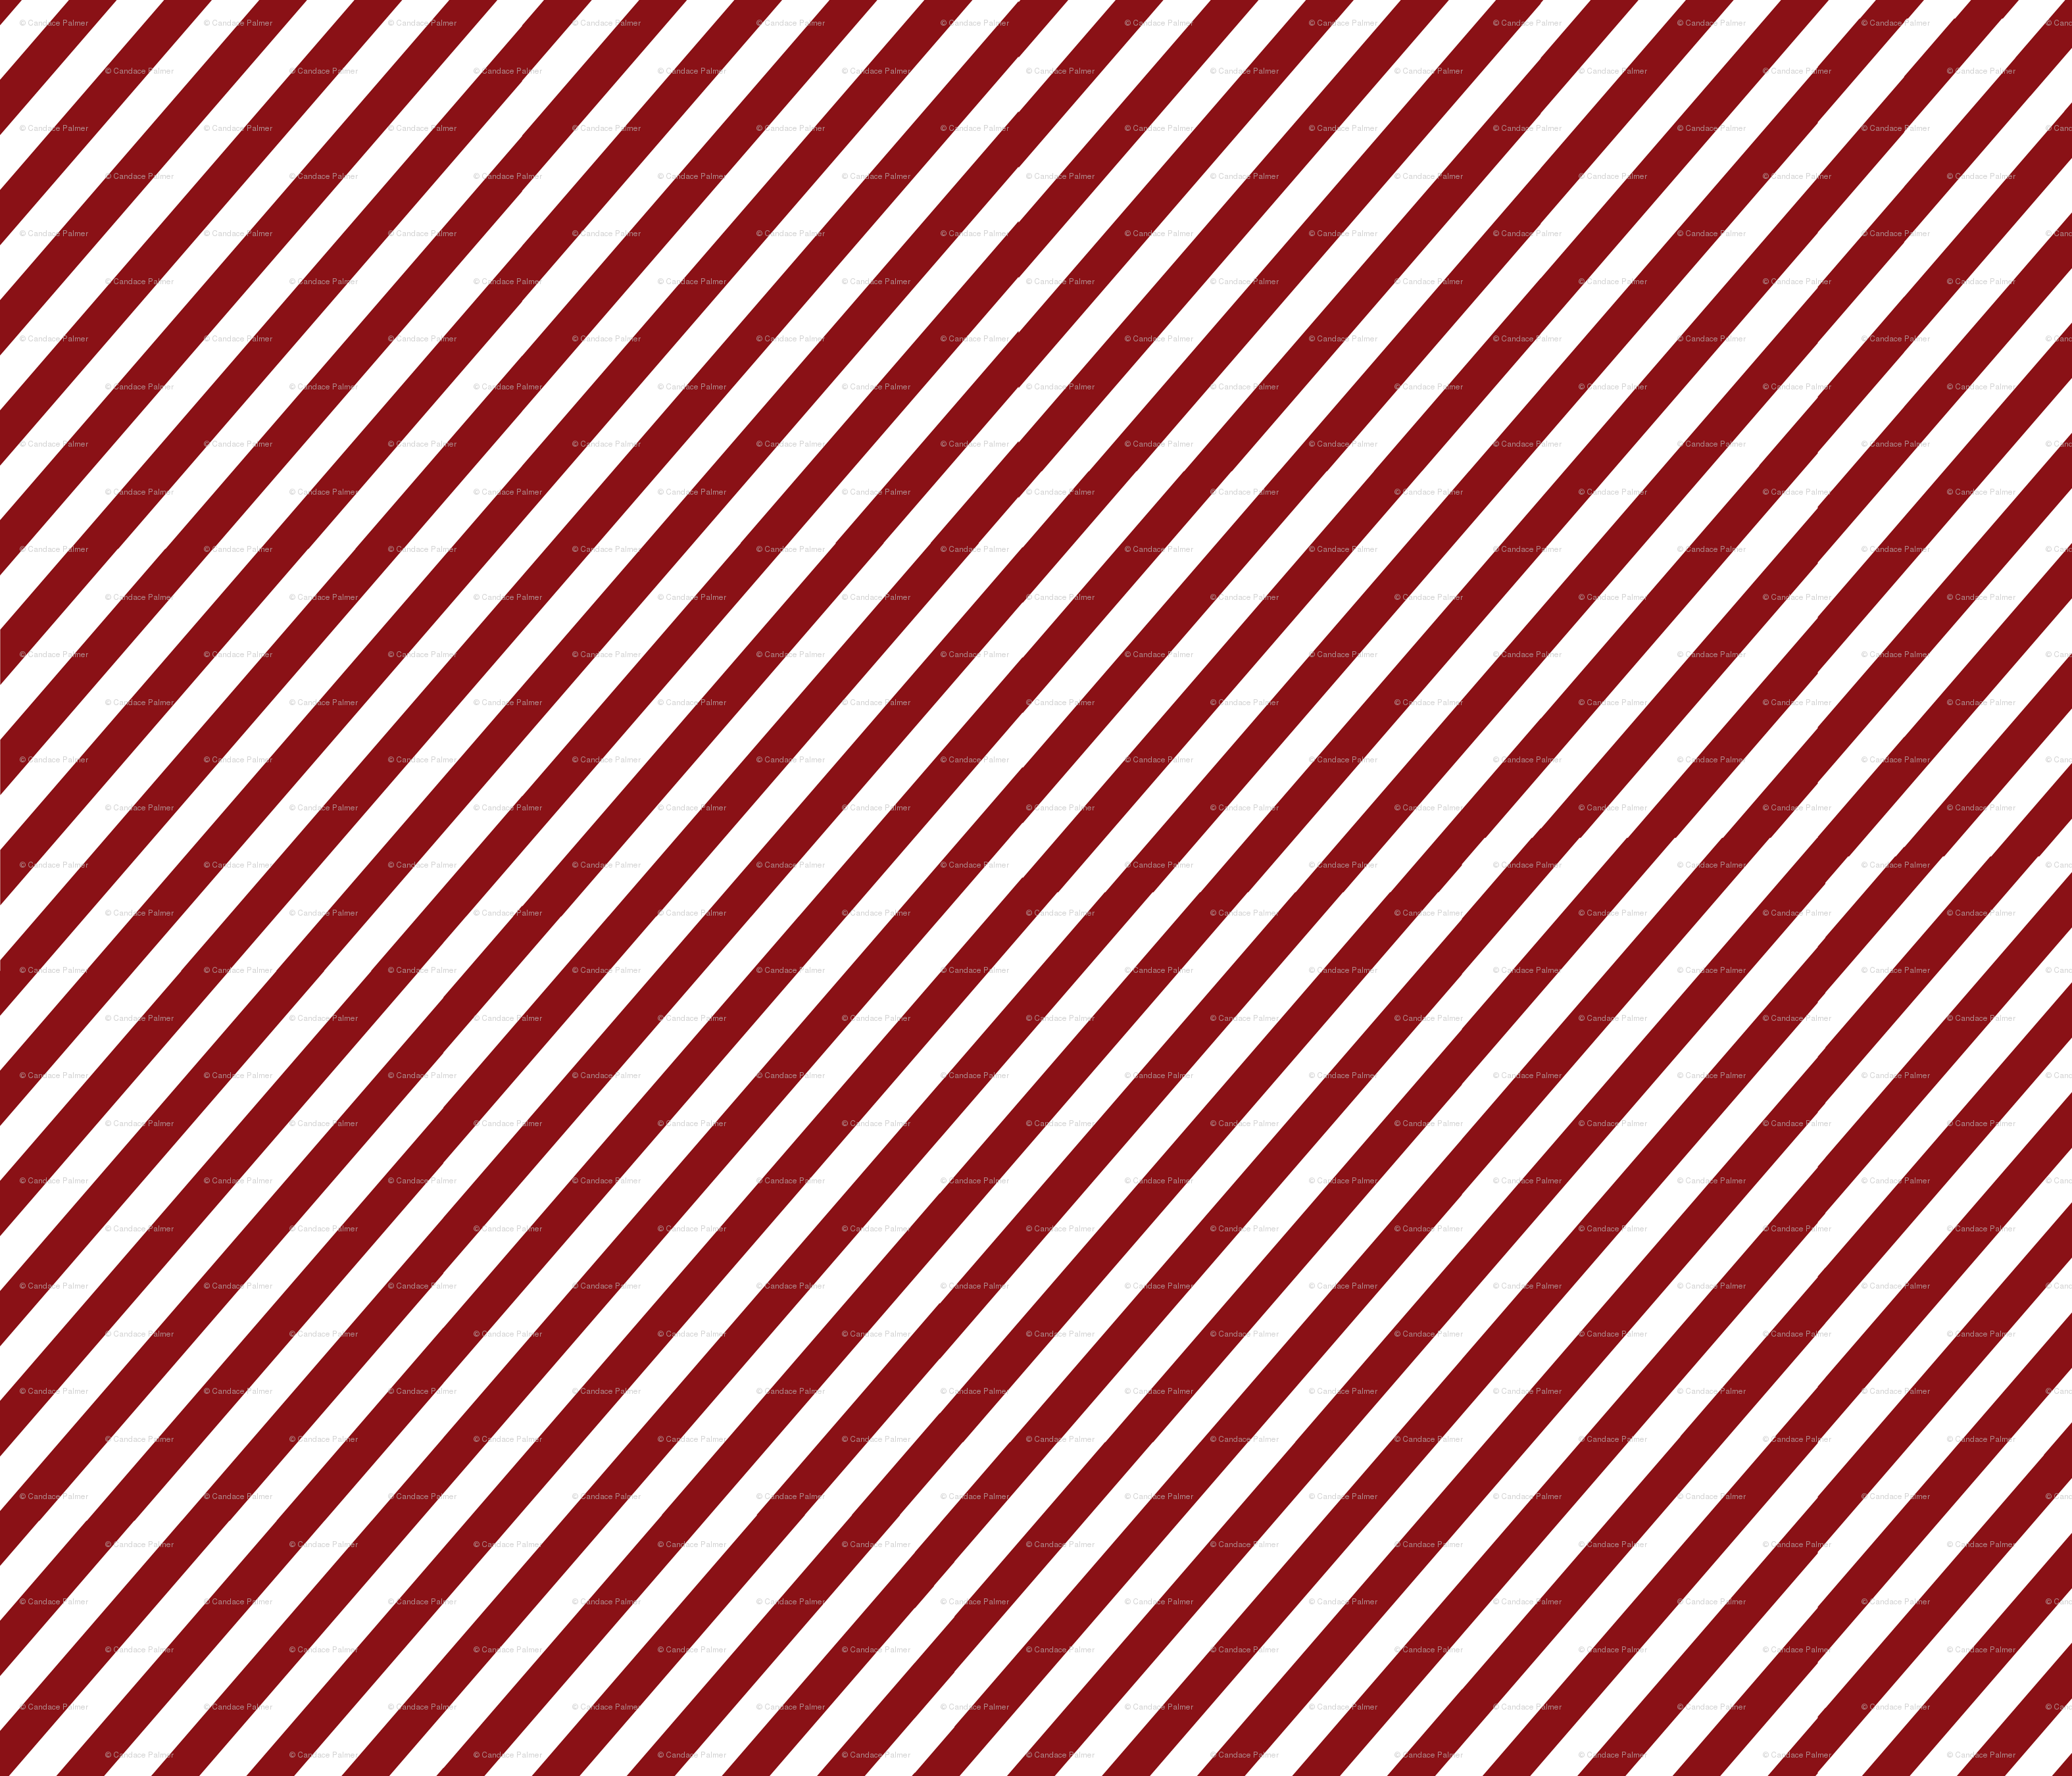 Diagonal red and white stripes. fabric - graphicdoodles - Spoonflower